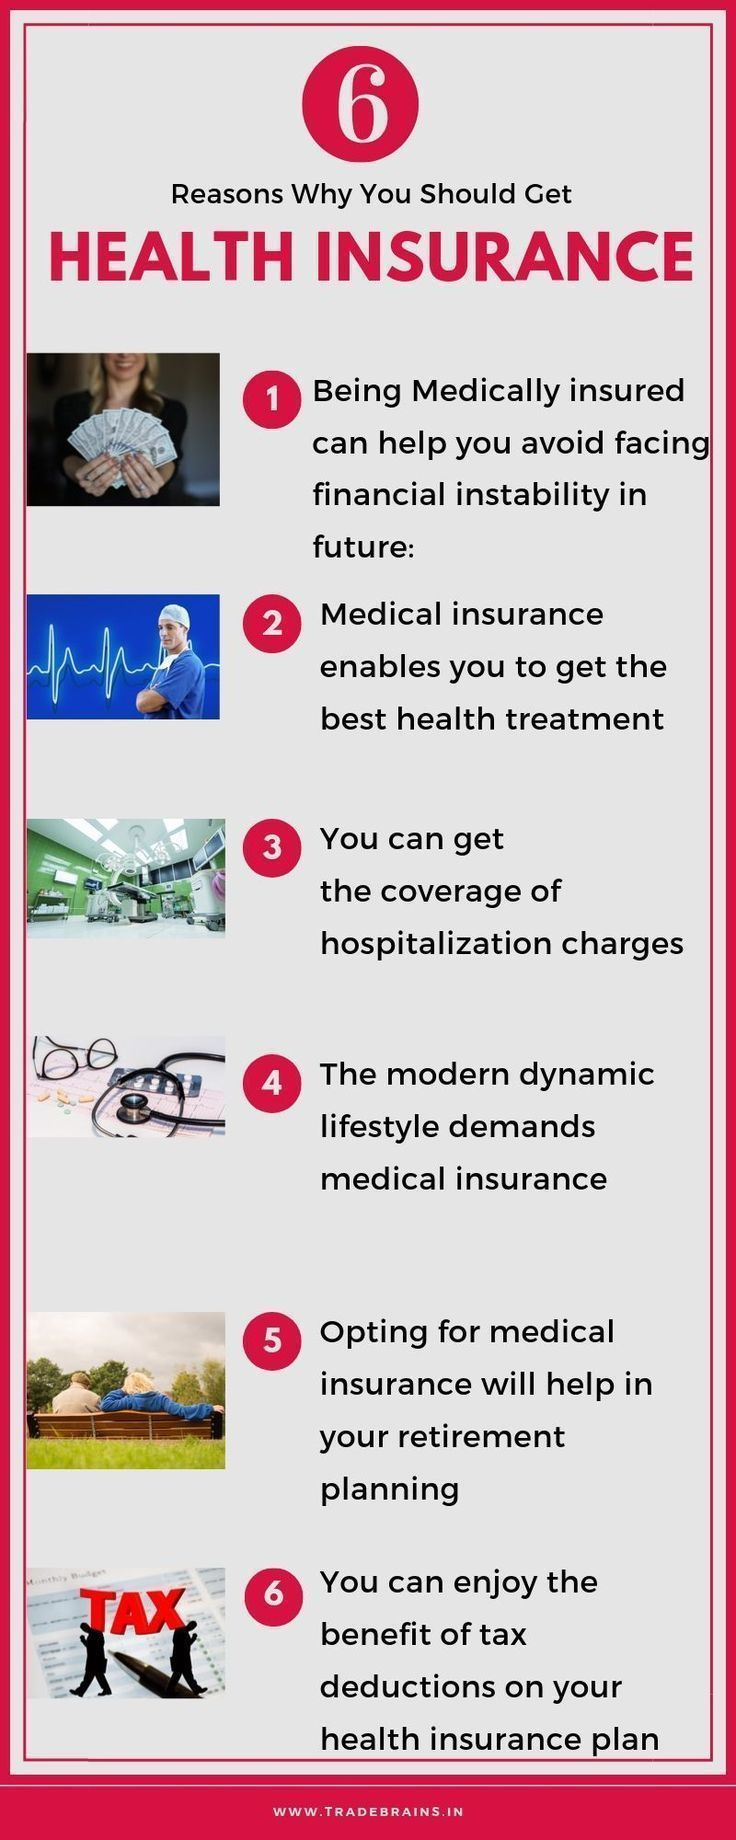 6 Reasons Why You Should Get Health Insurance Health Insurance